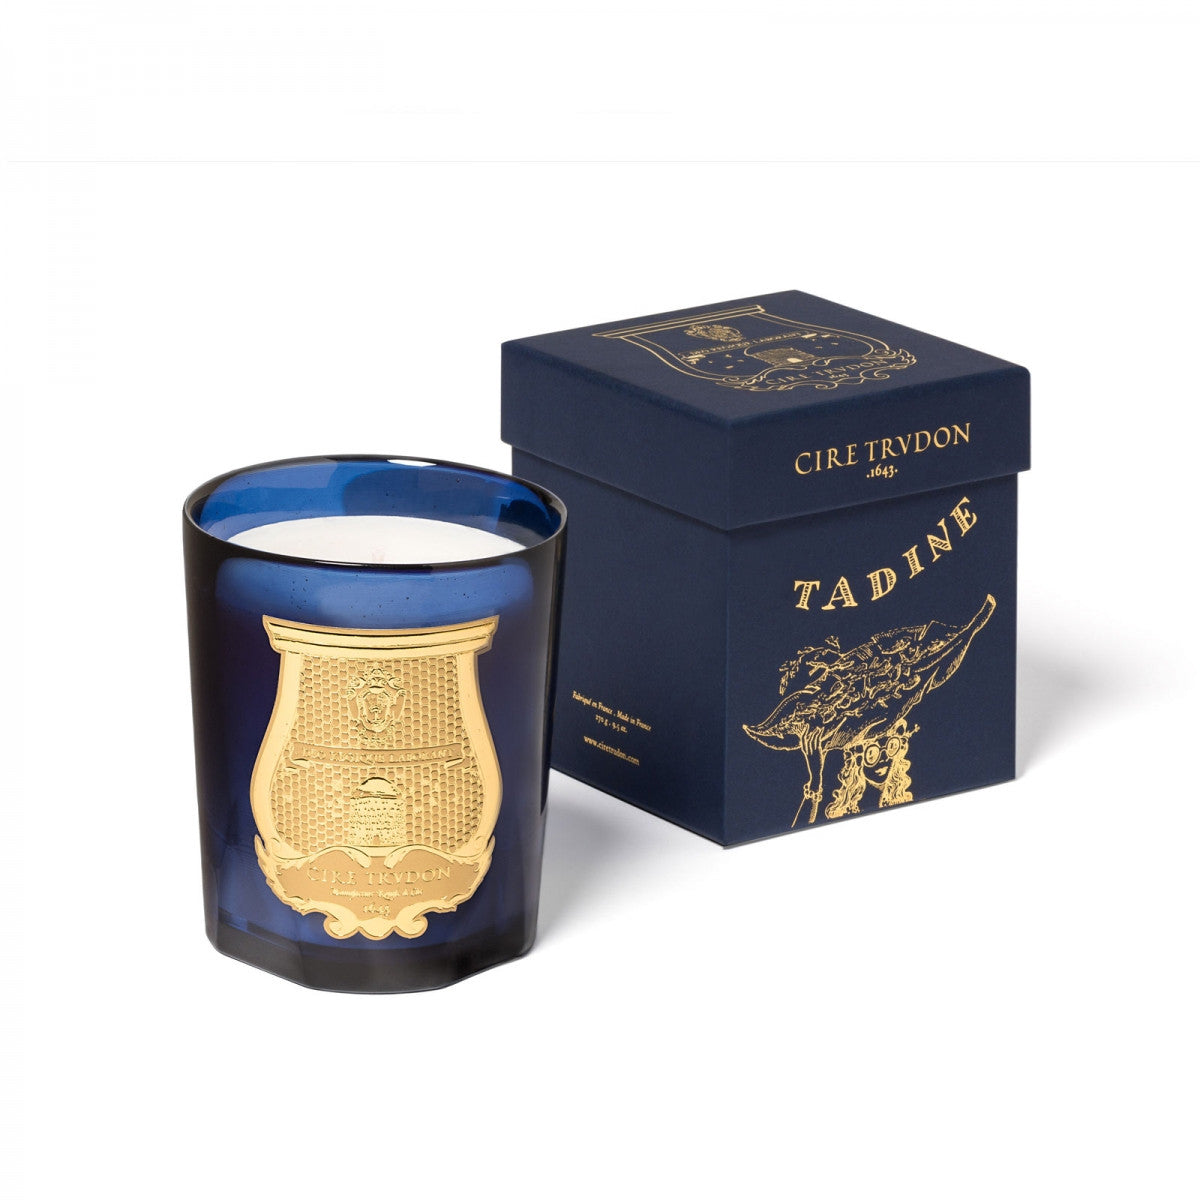 Cire Trudon Tadine Limited Edition Candle